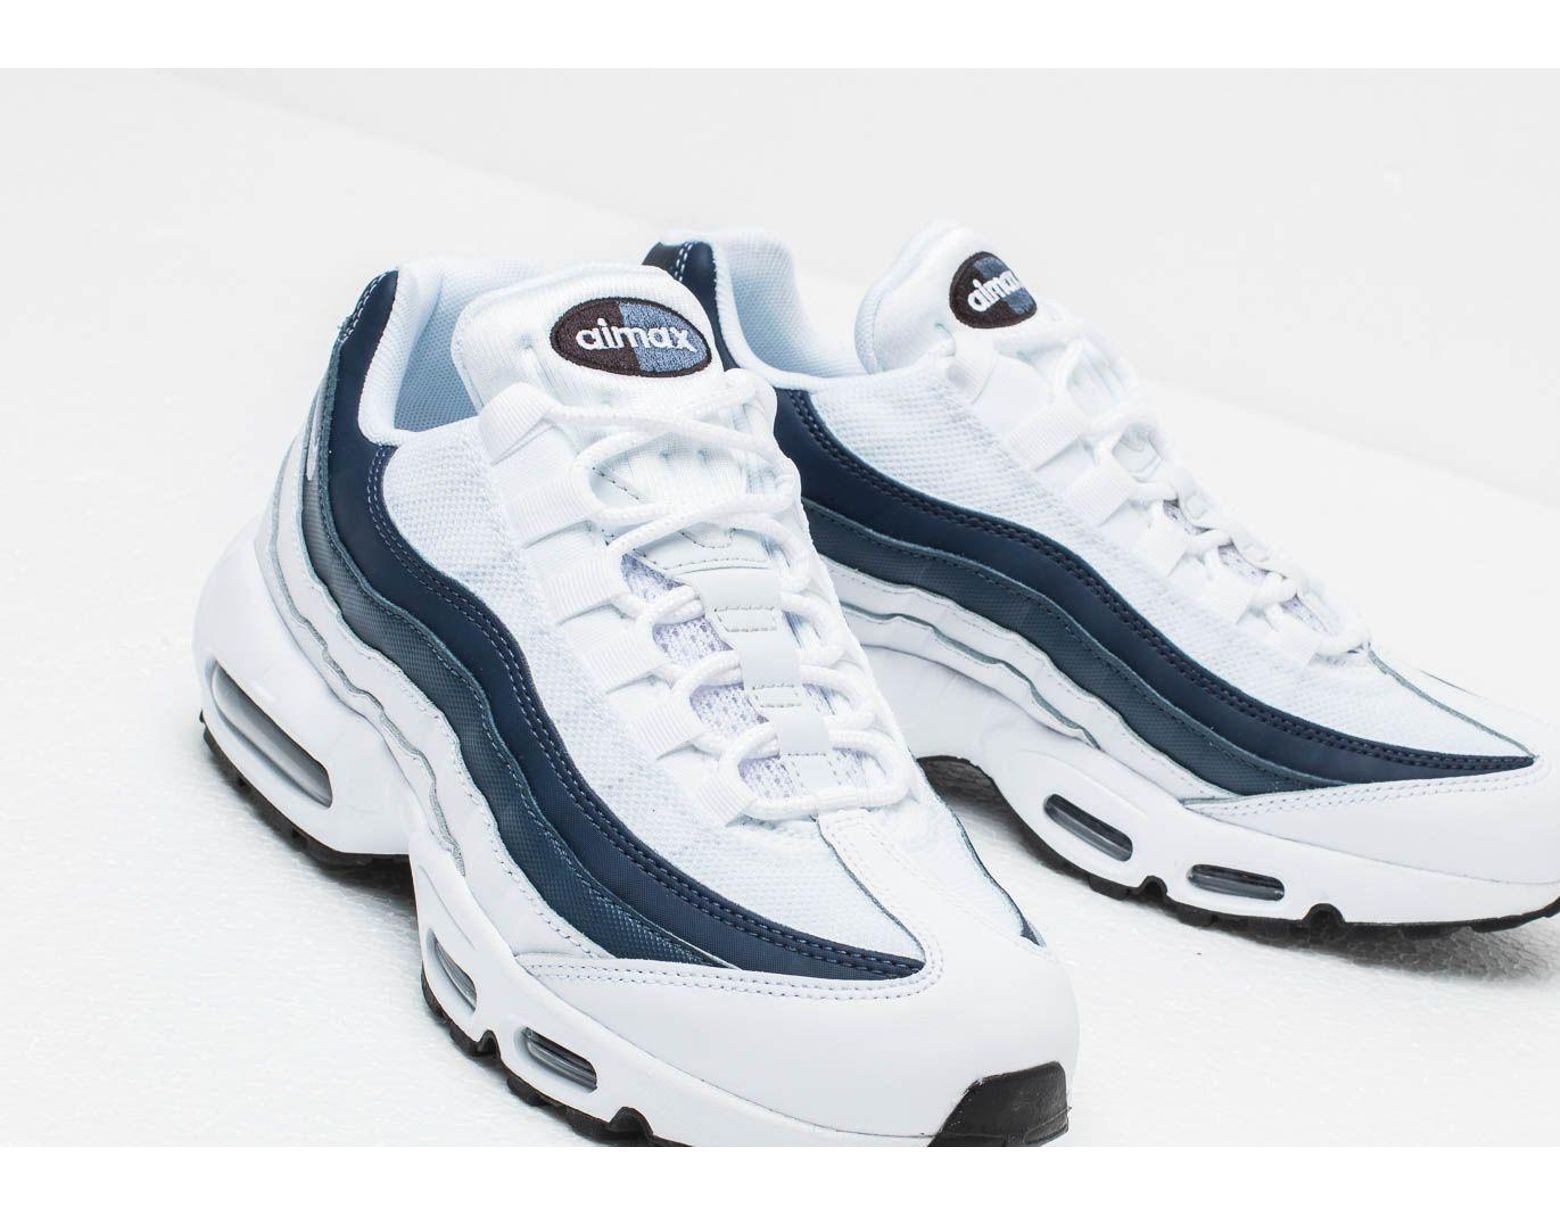 hot sale online 438fd 78e6a Nike Air Max 95 Essential White  White-midnight Navy-monsoon Blue in White  for Men - Lyst